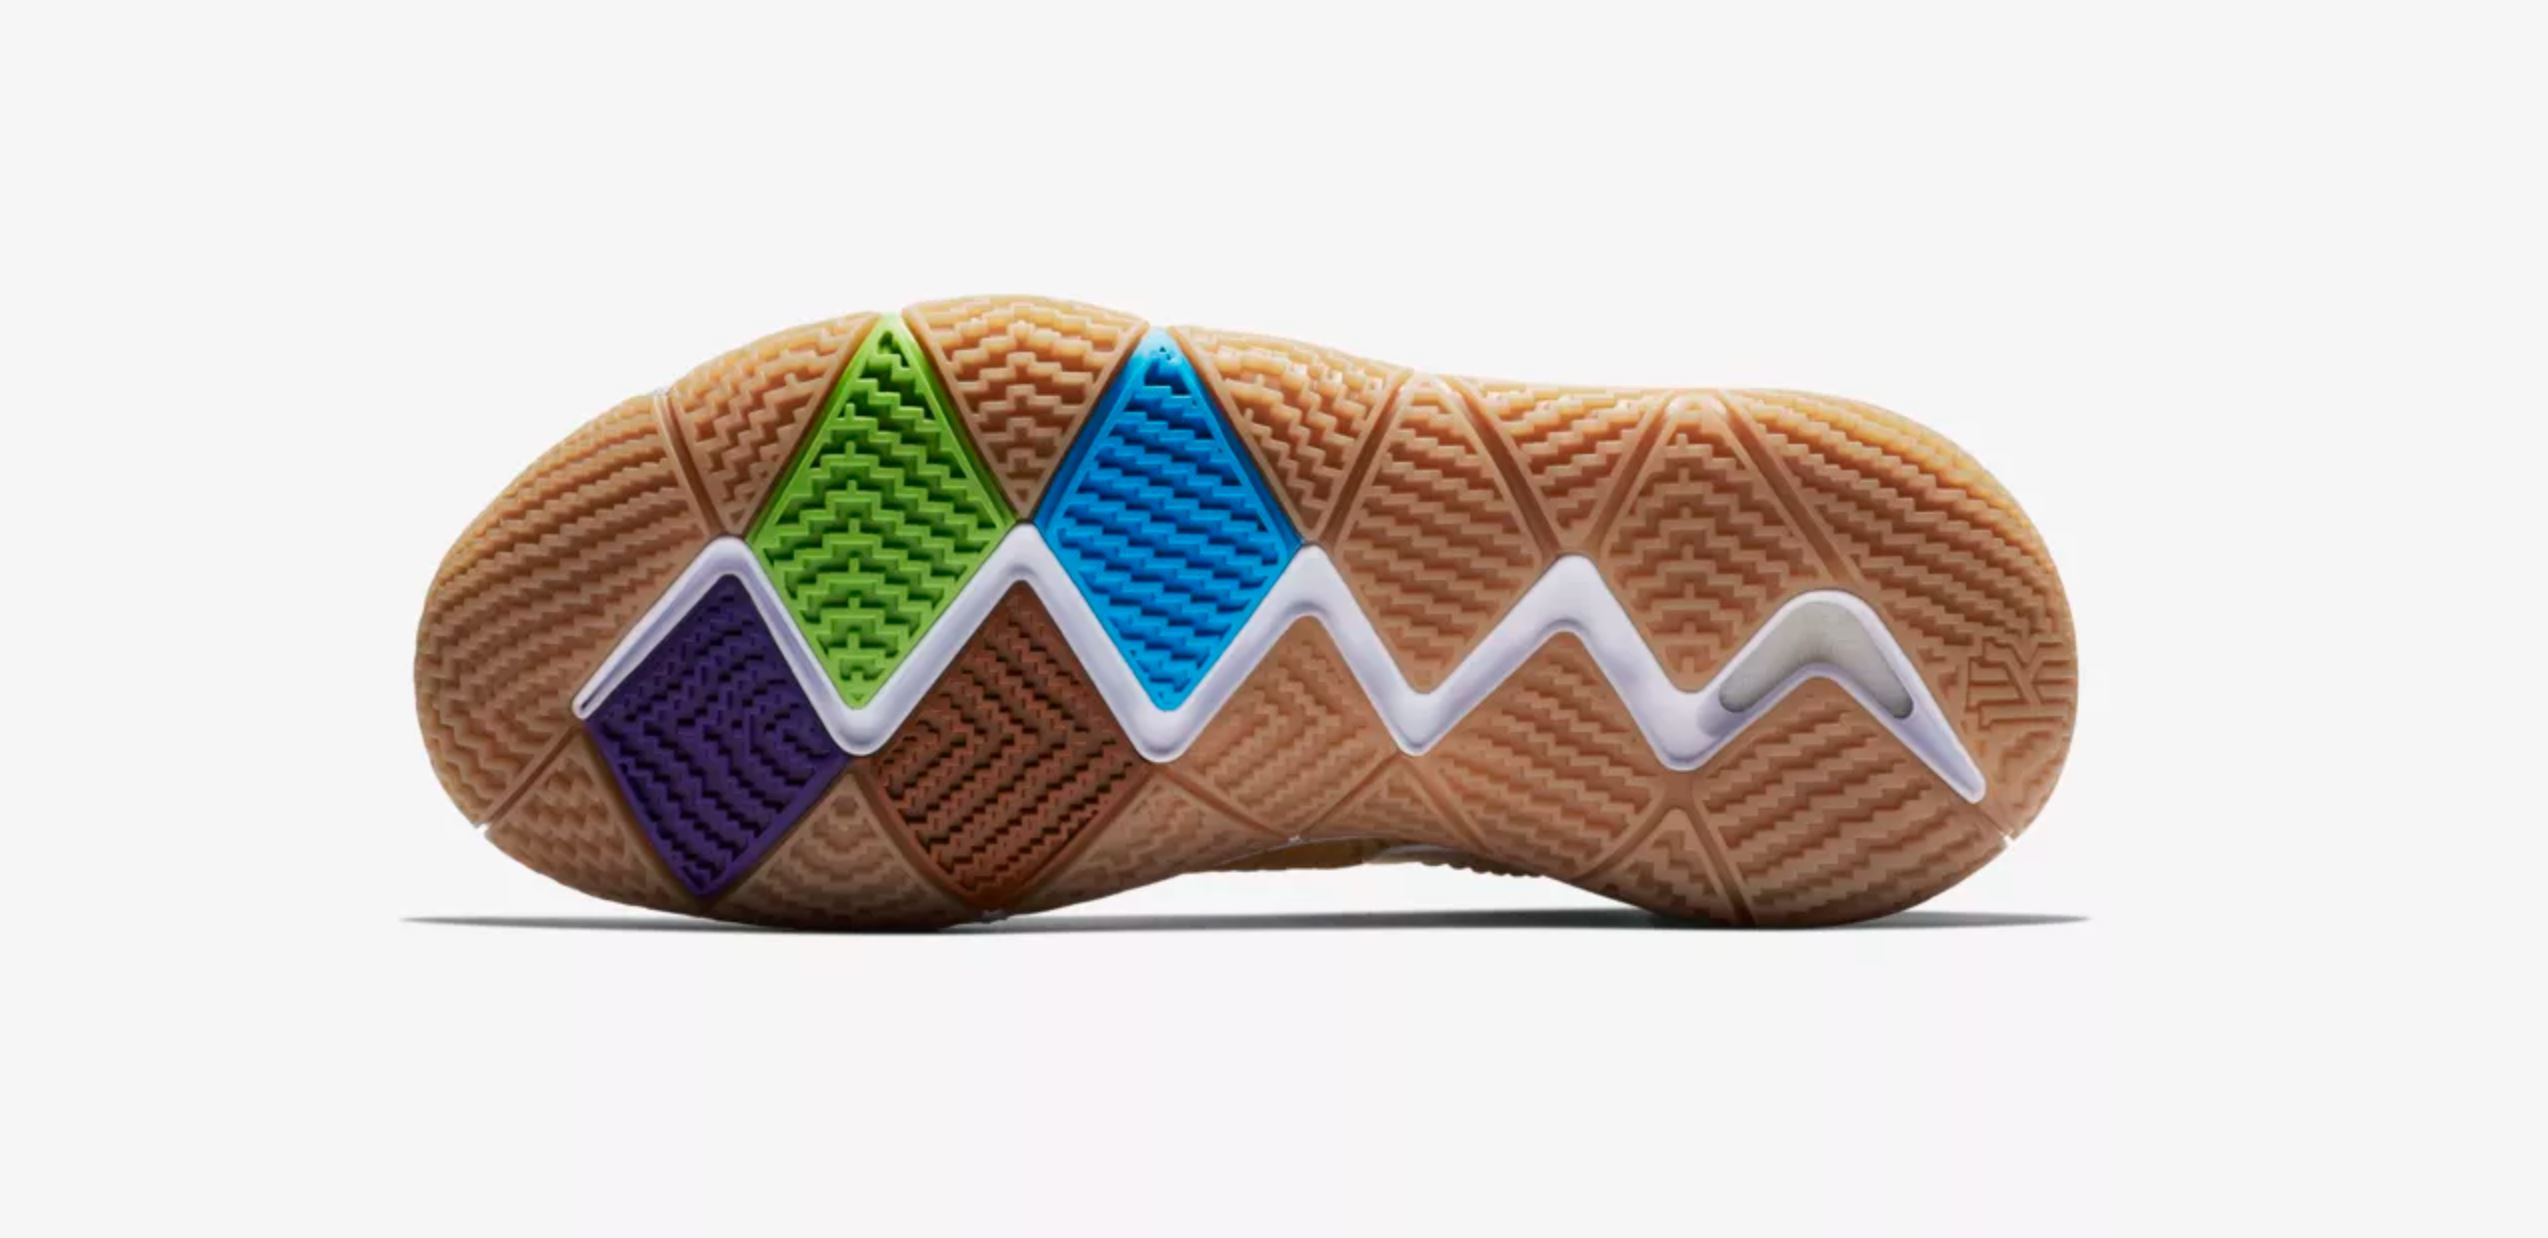 nike kyrie 4 cinnamon toast crunch outsole - WearTesters 4117fc01a